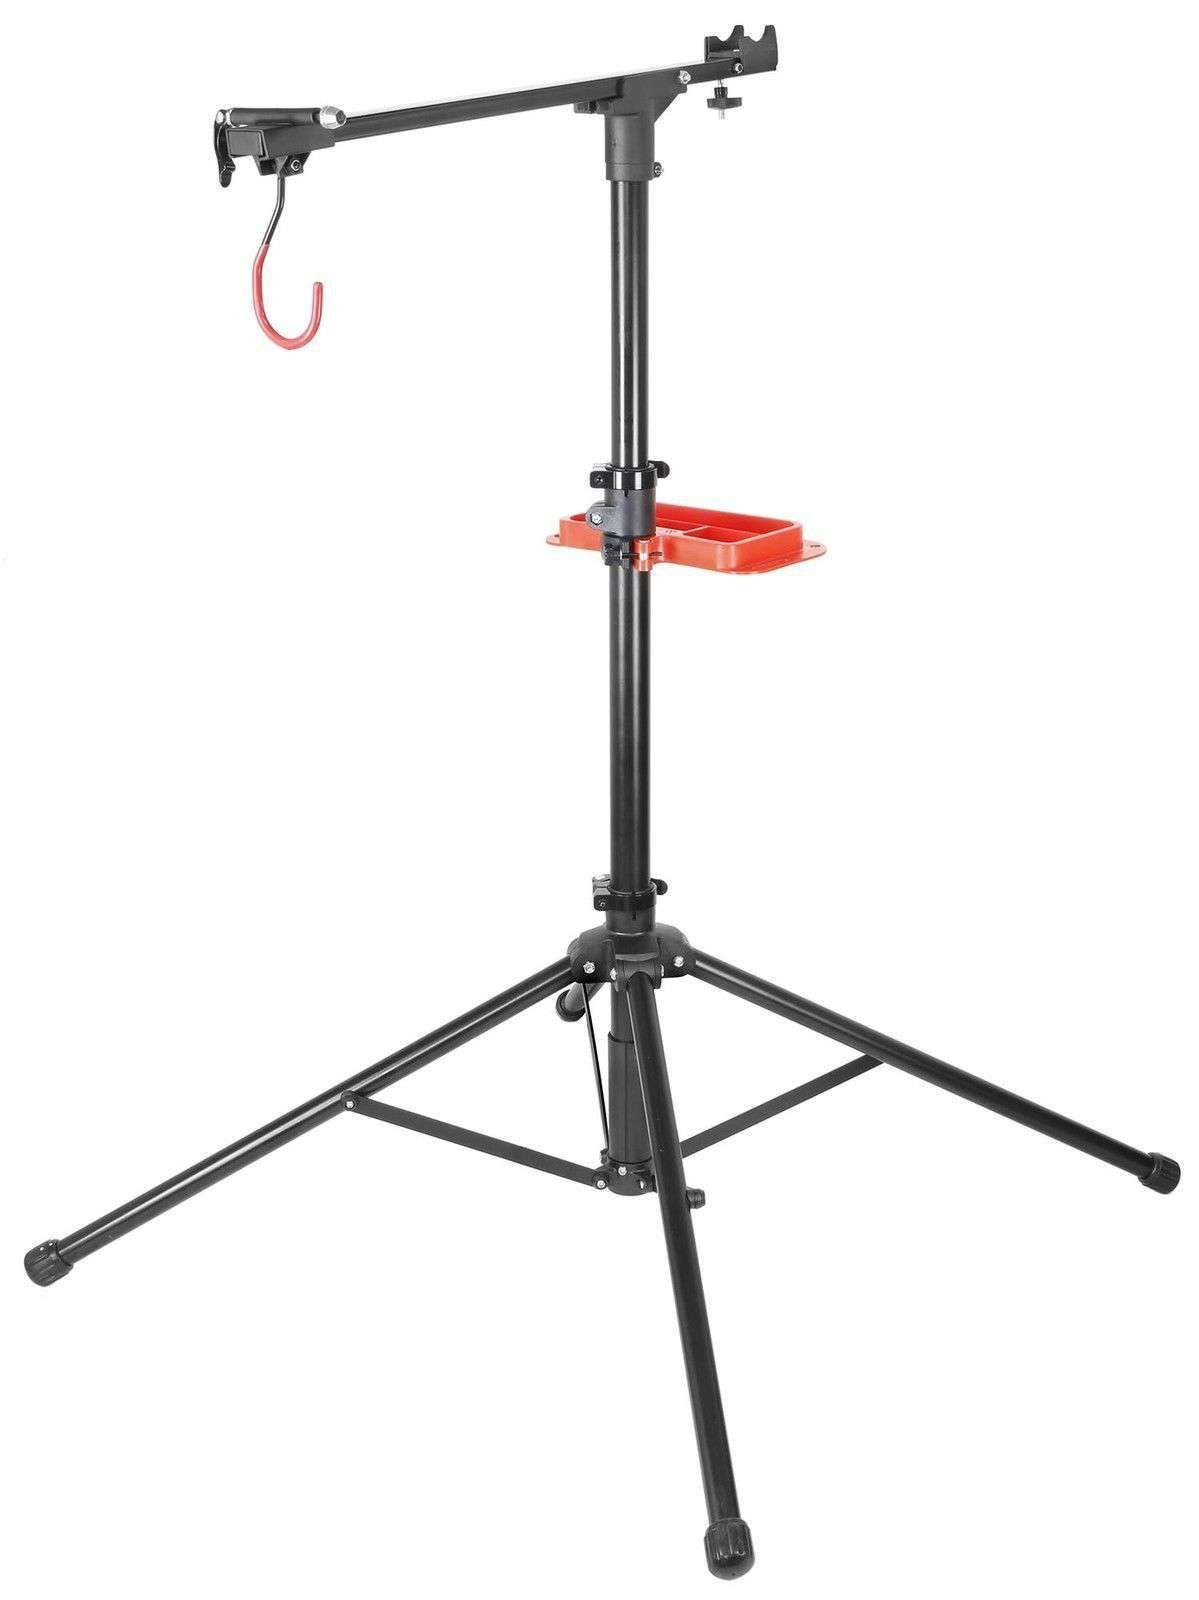 CyclingDeal Workstand Bike Bicycle Race Team Repair Stand by CyclingDeal